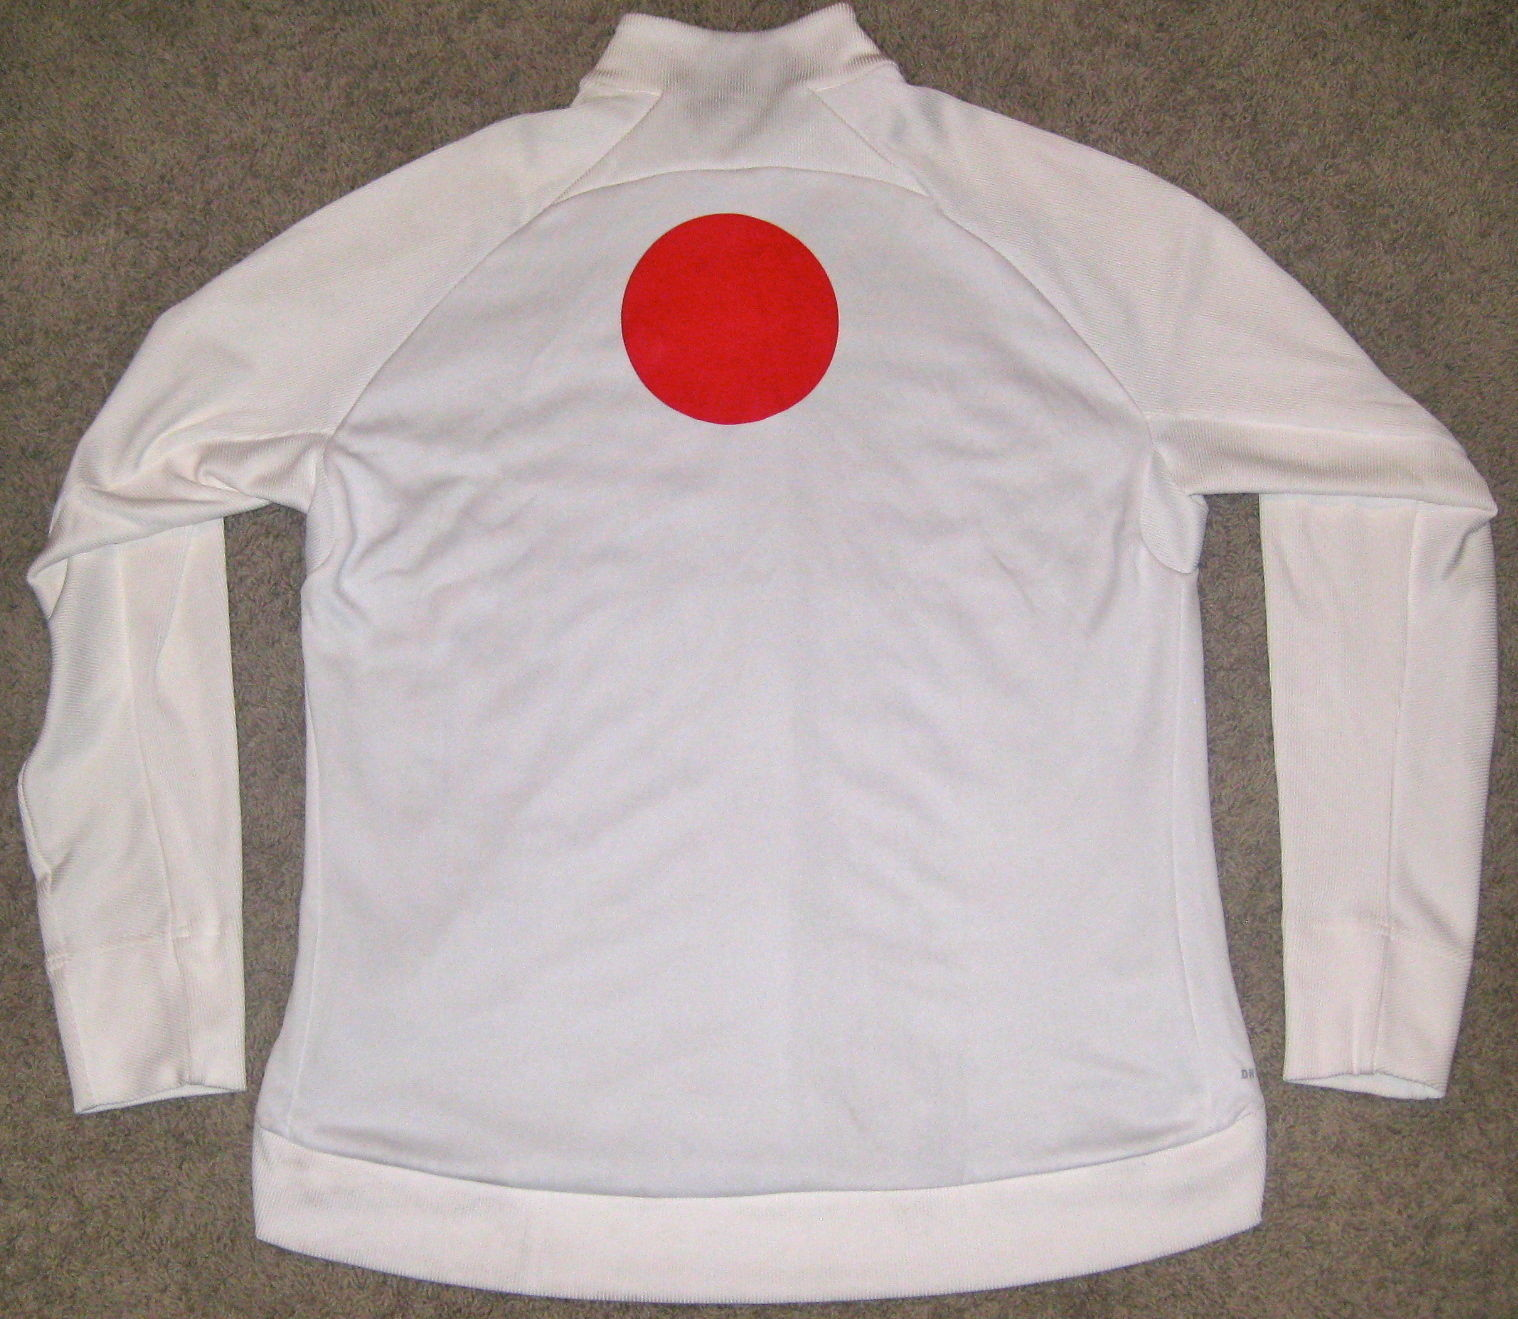 Primary image for NEW NIKE N12 COUNTRY JAPAN Men's Track Jacket $150 S SM 466404 STAY WARM DRI FIT